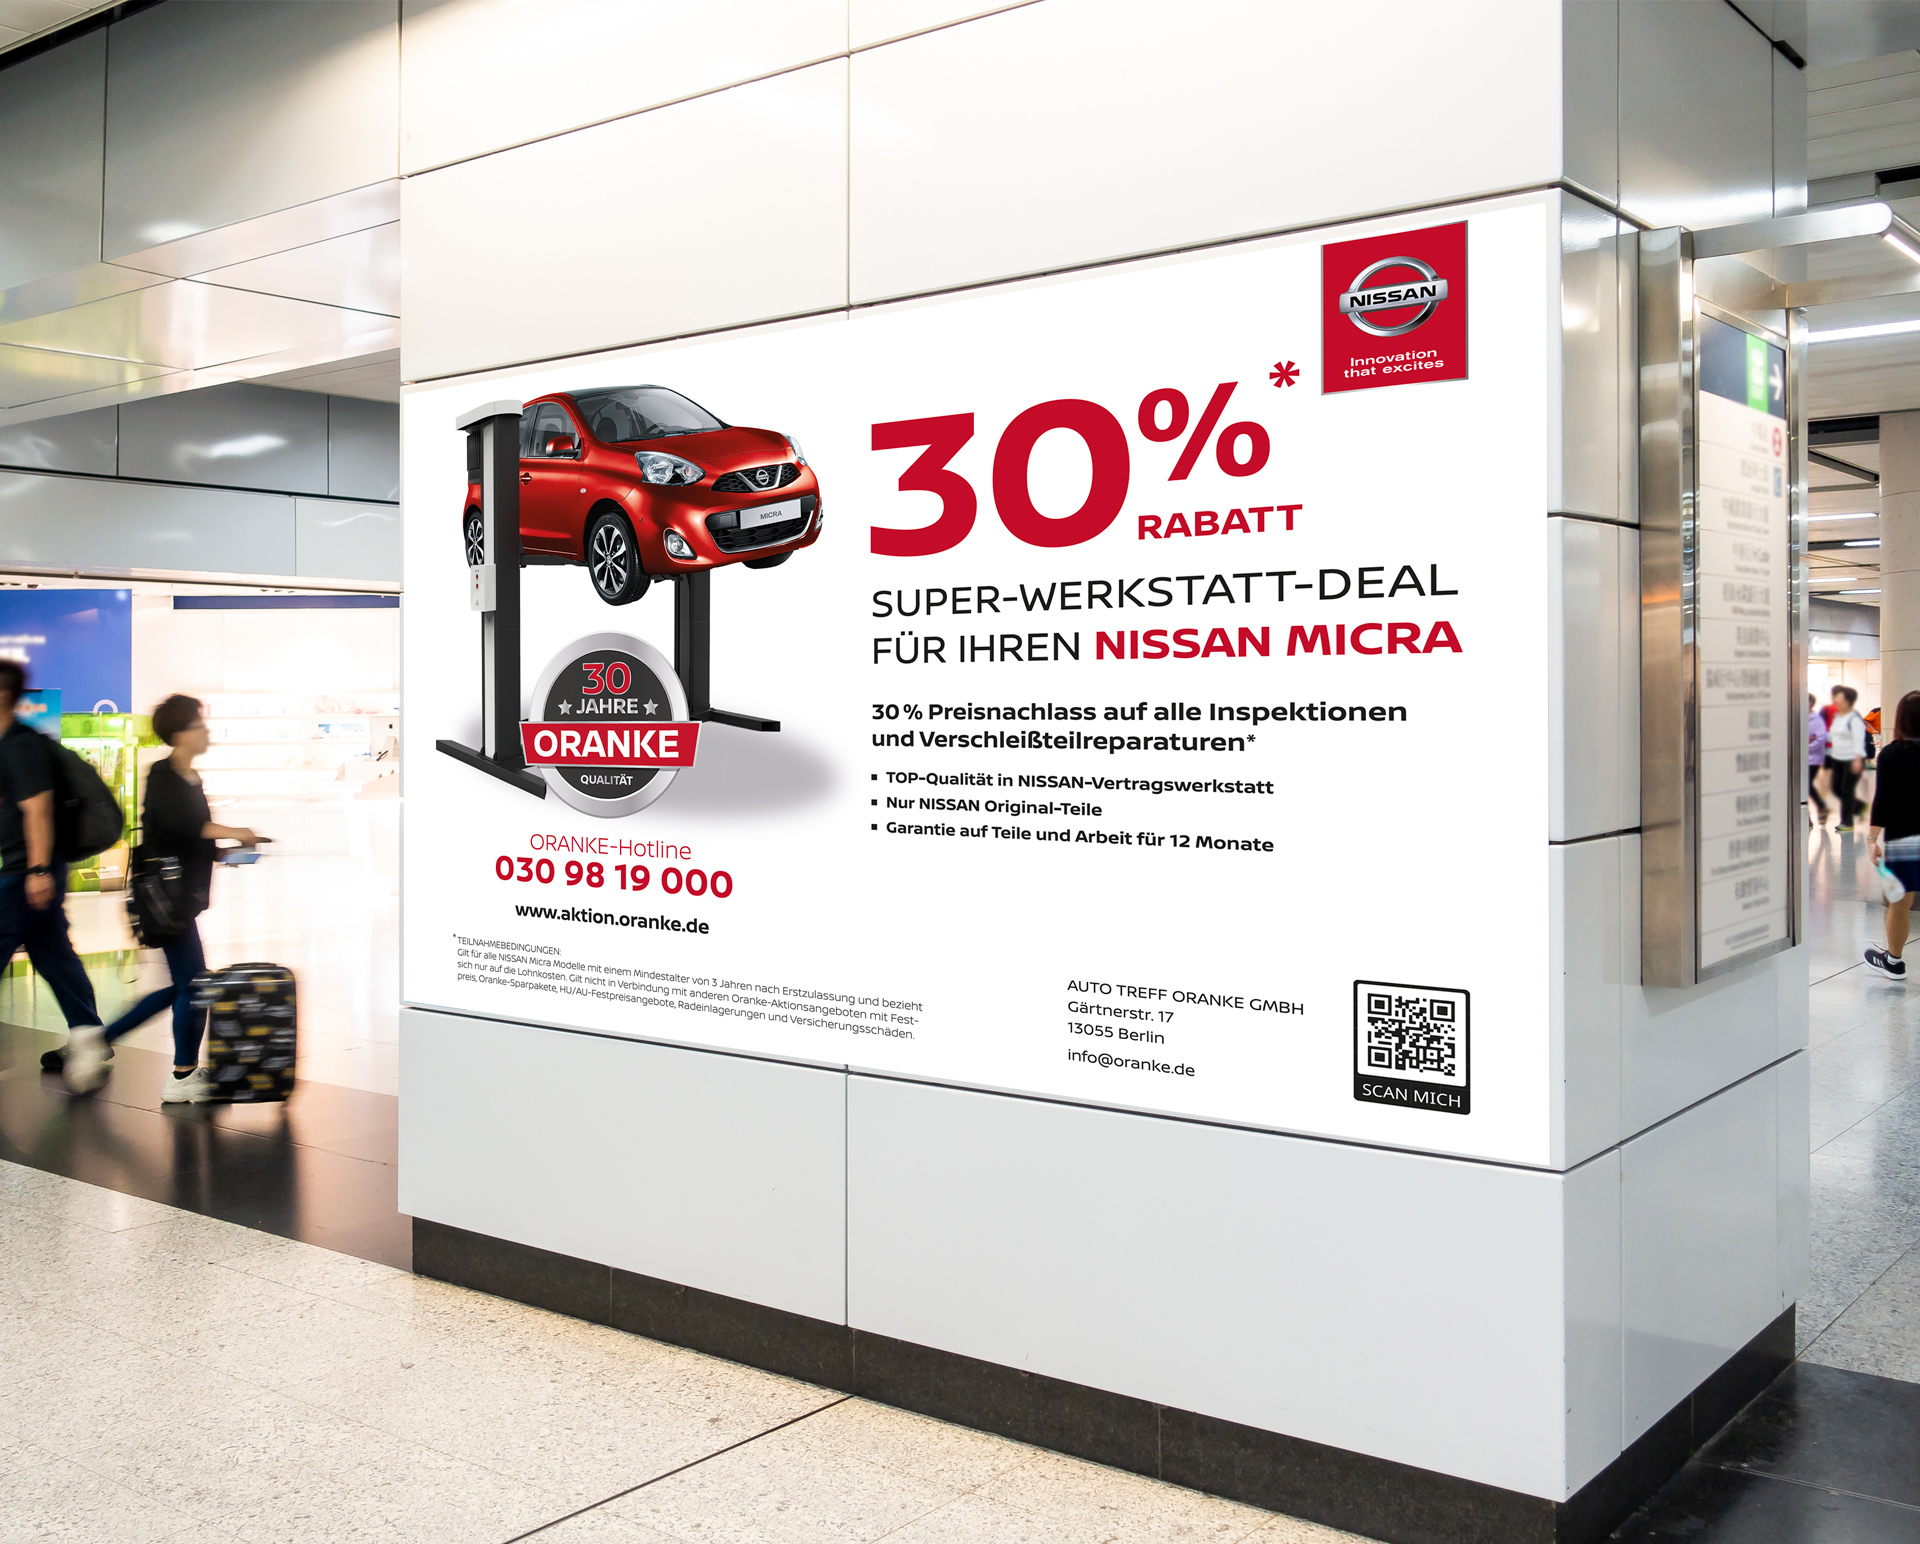 Referenz agreement - NISSAN Micra Kampagne Oranke